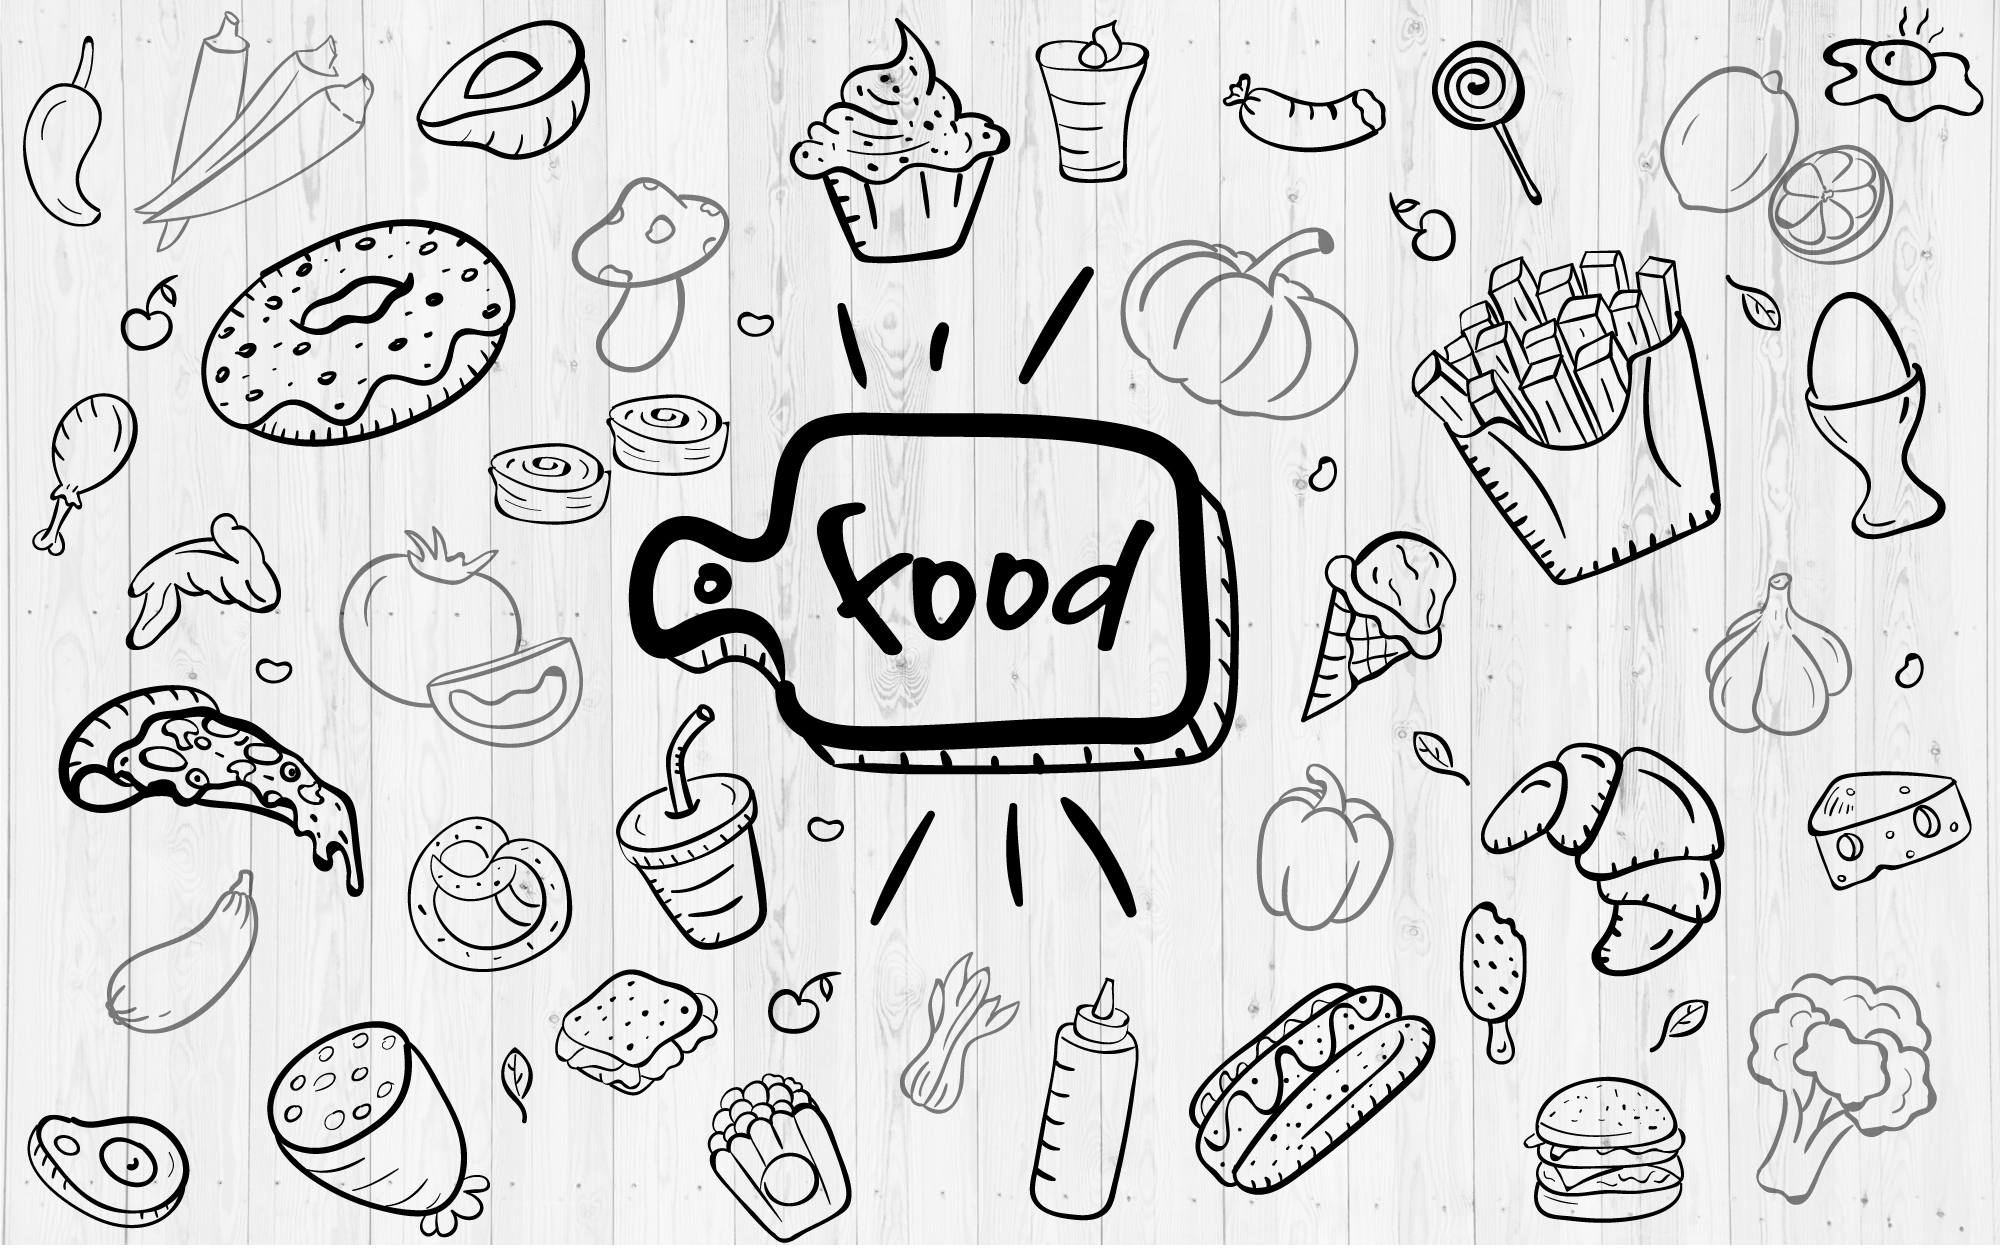 Hand-Drawn-Food-background-[Recovered]-option2Hand-Drawn-Food-background-[Recovered]-option2